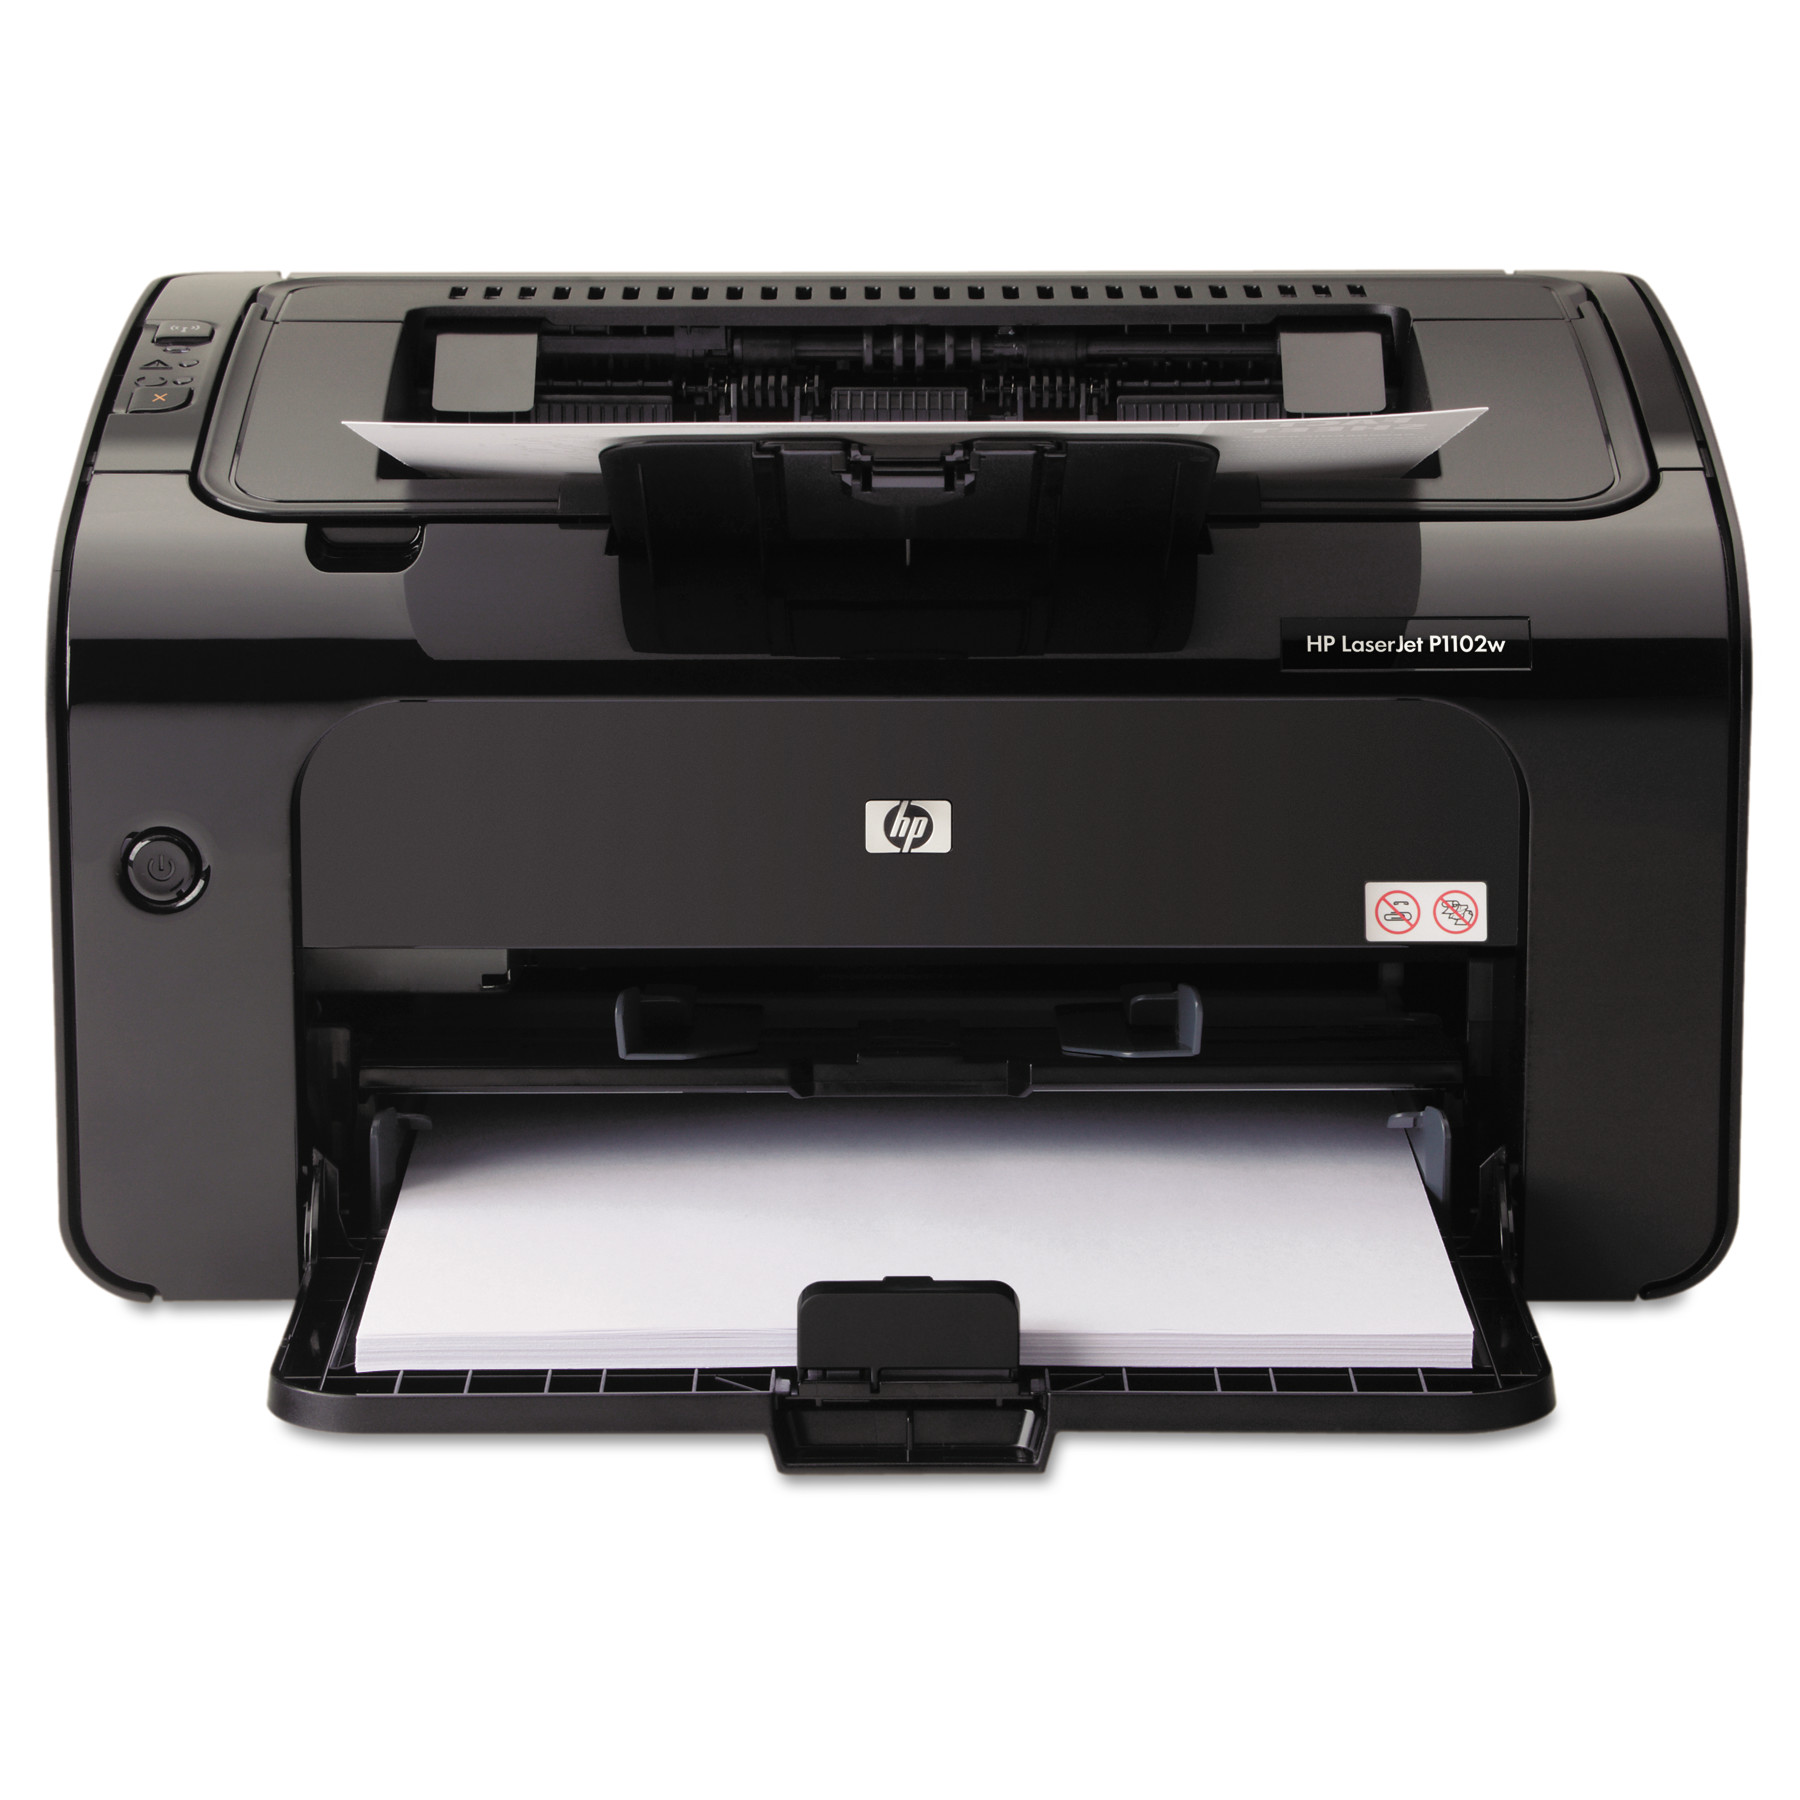 HP LaserJet Pro P1102w Wireless Laser Printer by HP